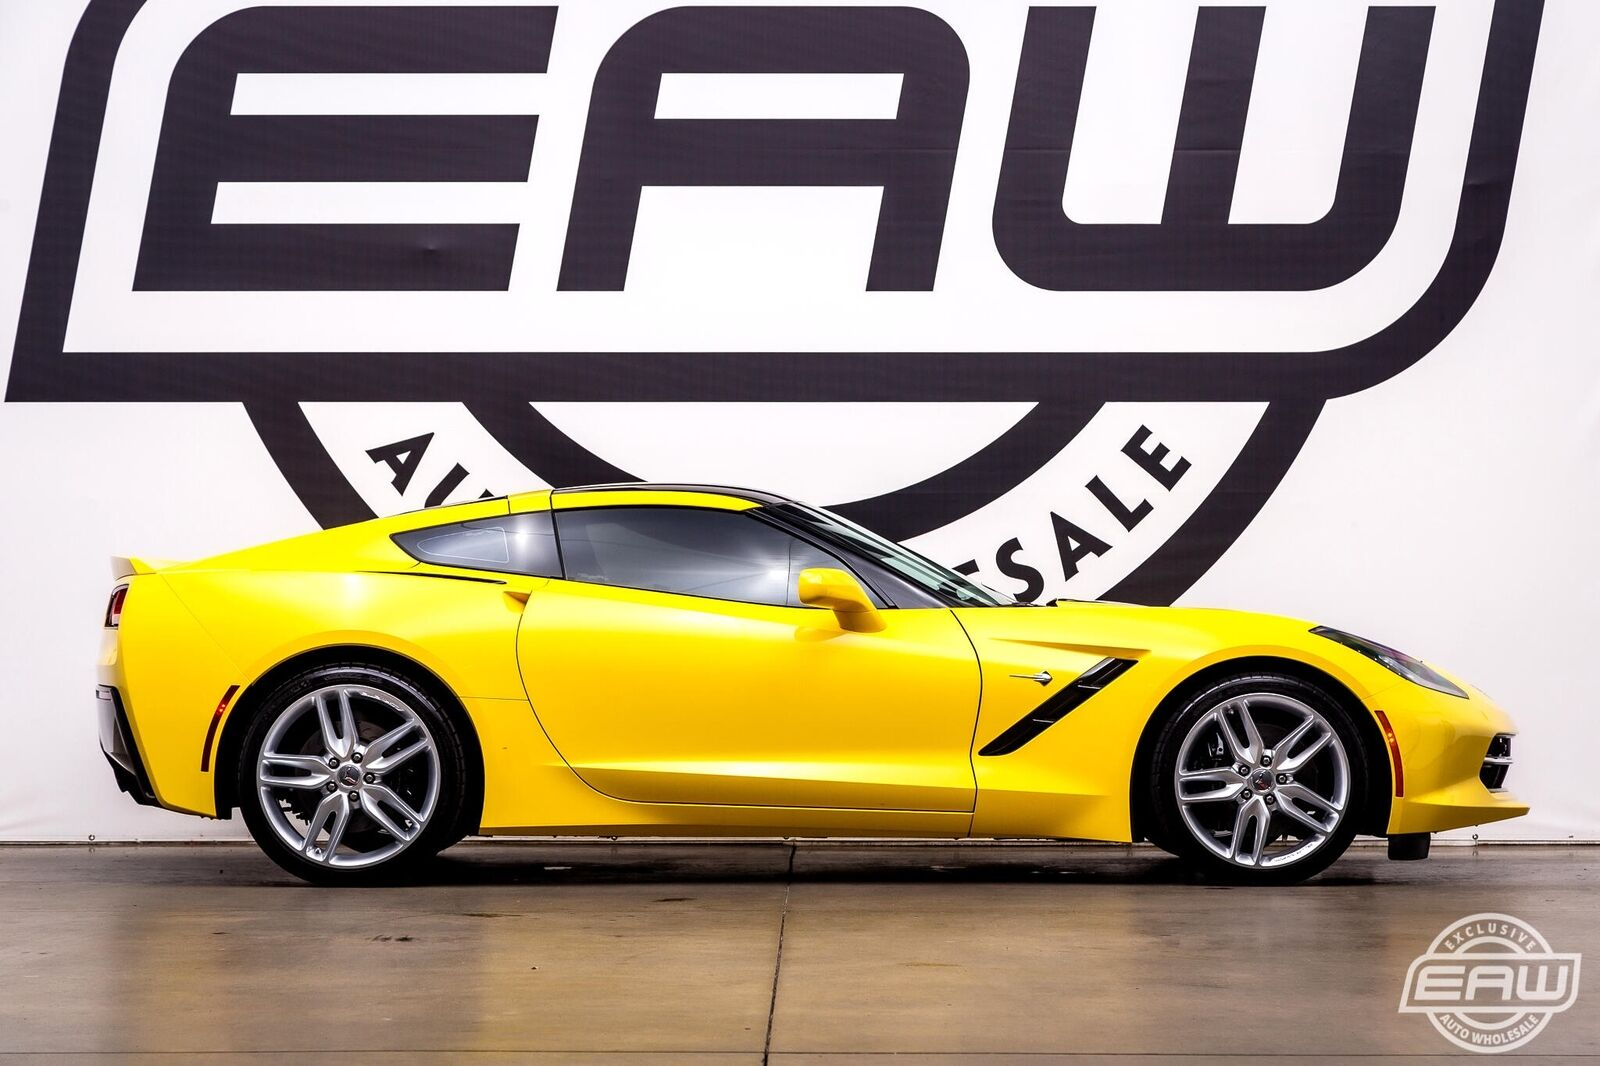 2016 Yellow Chevrolet Corvette Stingray 2LT | C7 Corvette Photo 9